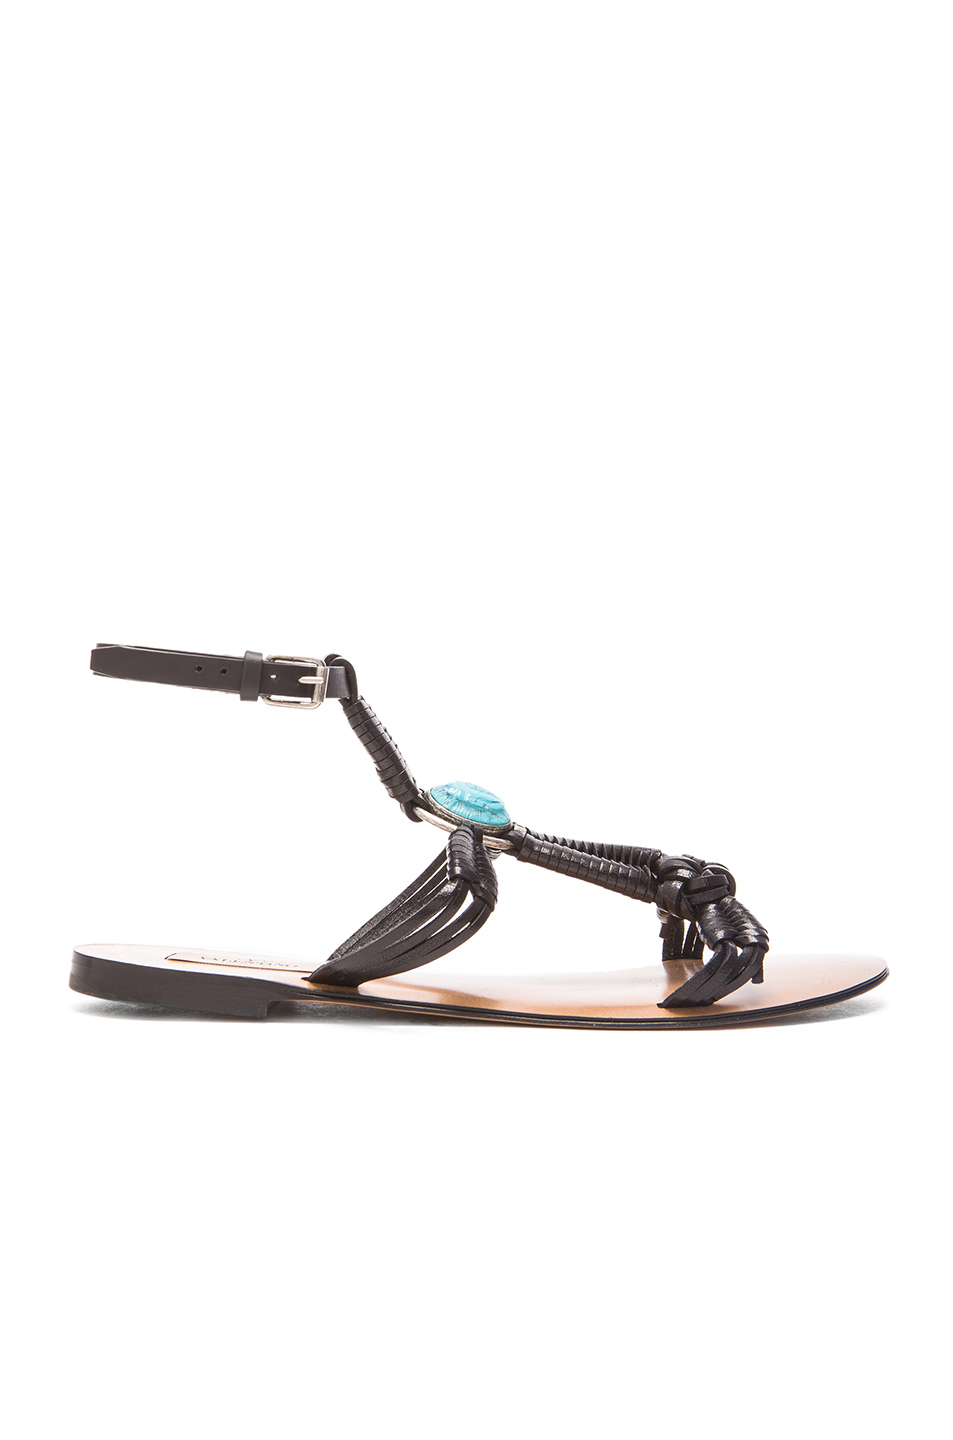 Valentino Flat Ankle Strap Sandals In Natural, Antique Silver & Turquoise